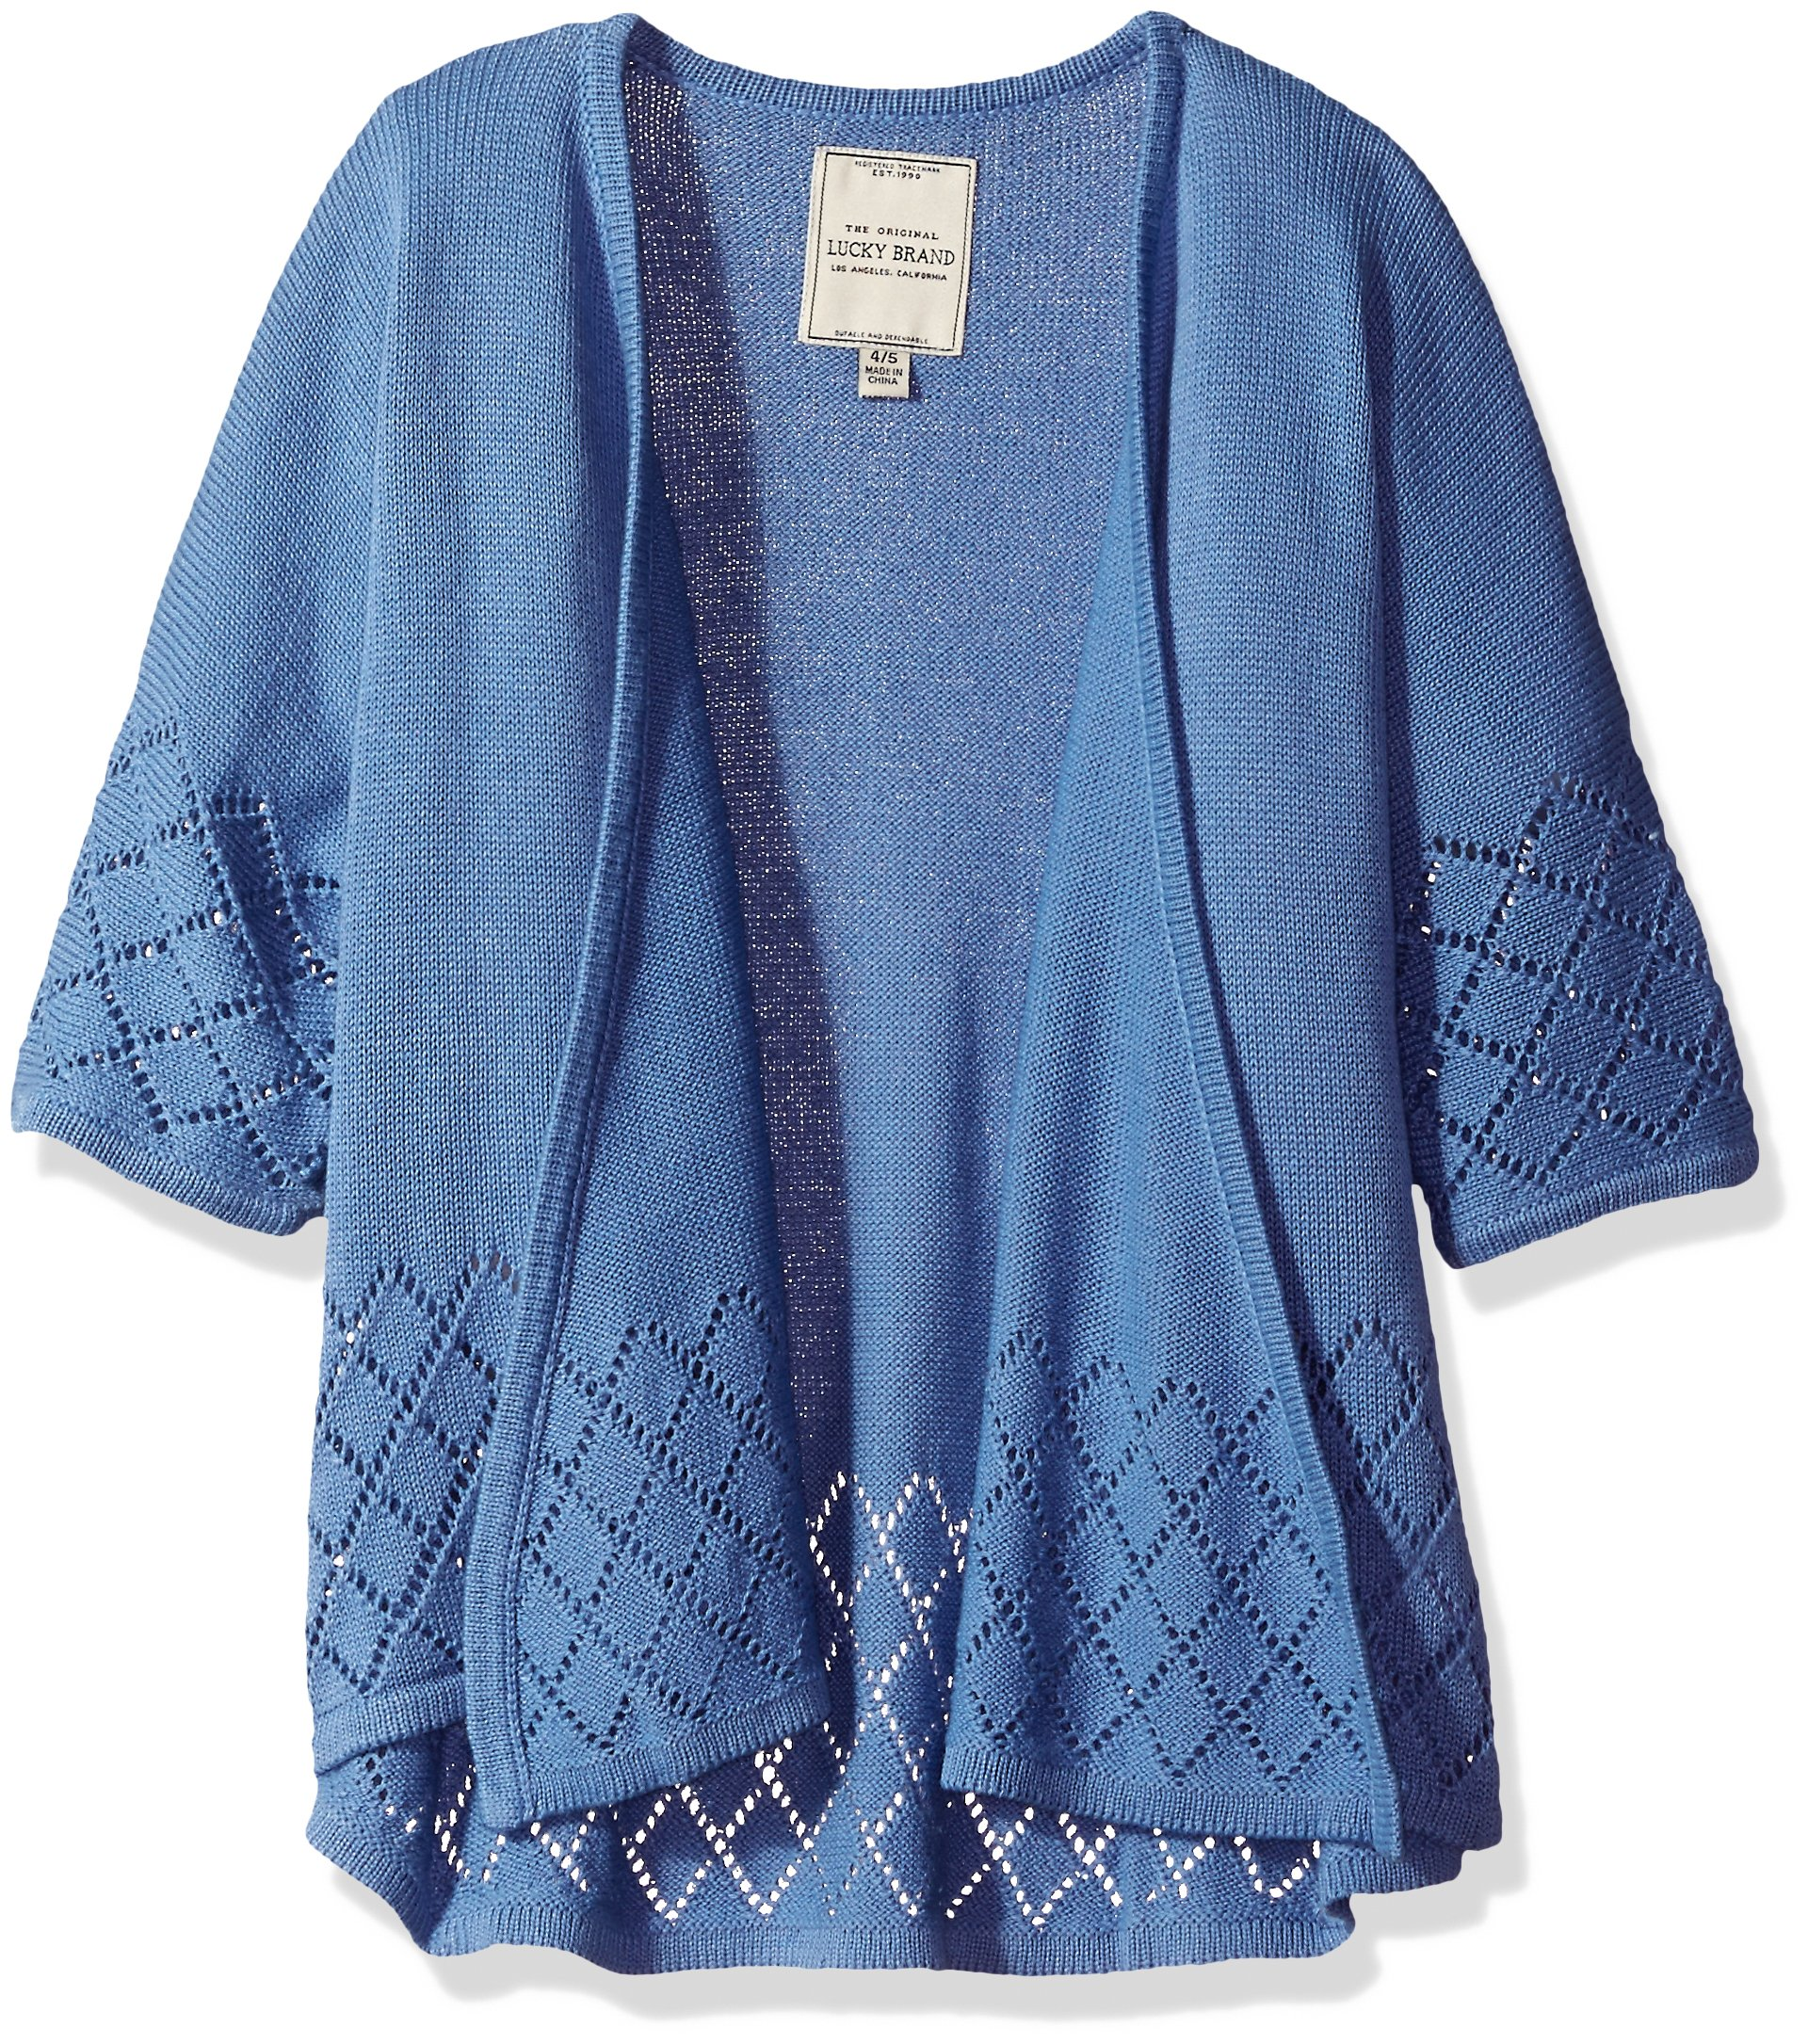 Lucky Brand Little Girls'Fashion Cardigan, Ashley Colony Blue, 6 by Lucky Brand (Image #1)